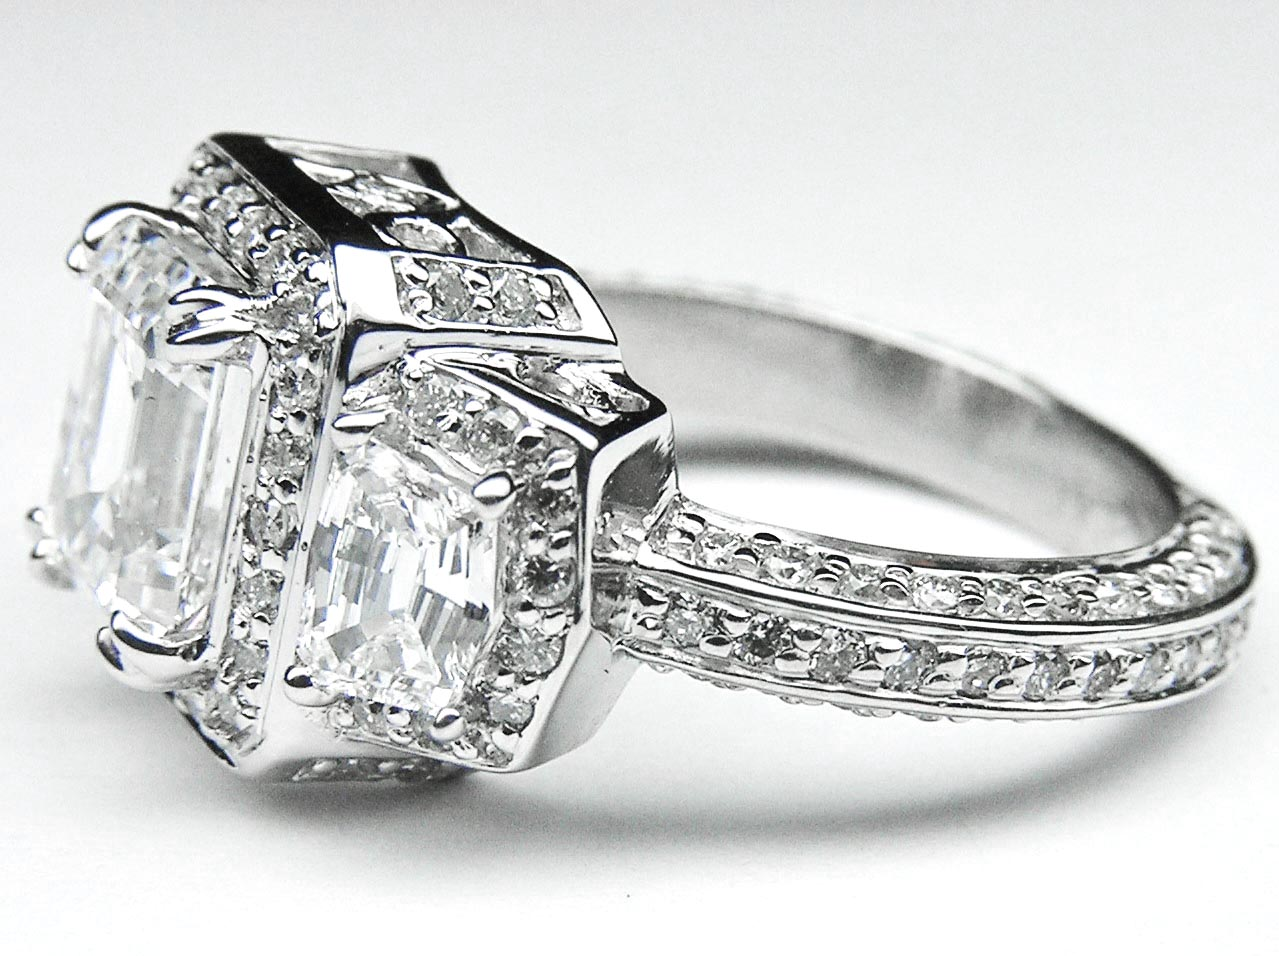 Emerald Diamond Vintage Design Halo Engagement Ring Cadillac trapezoids side stones in 14K White Gold